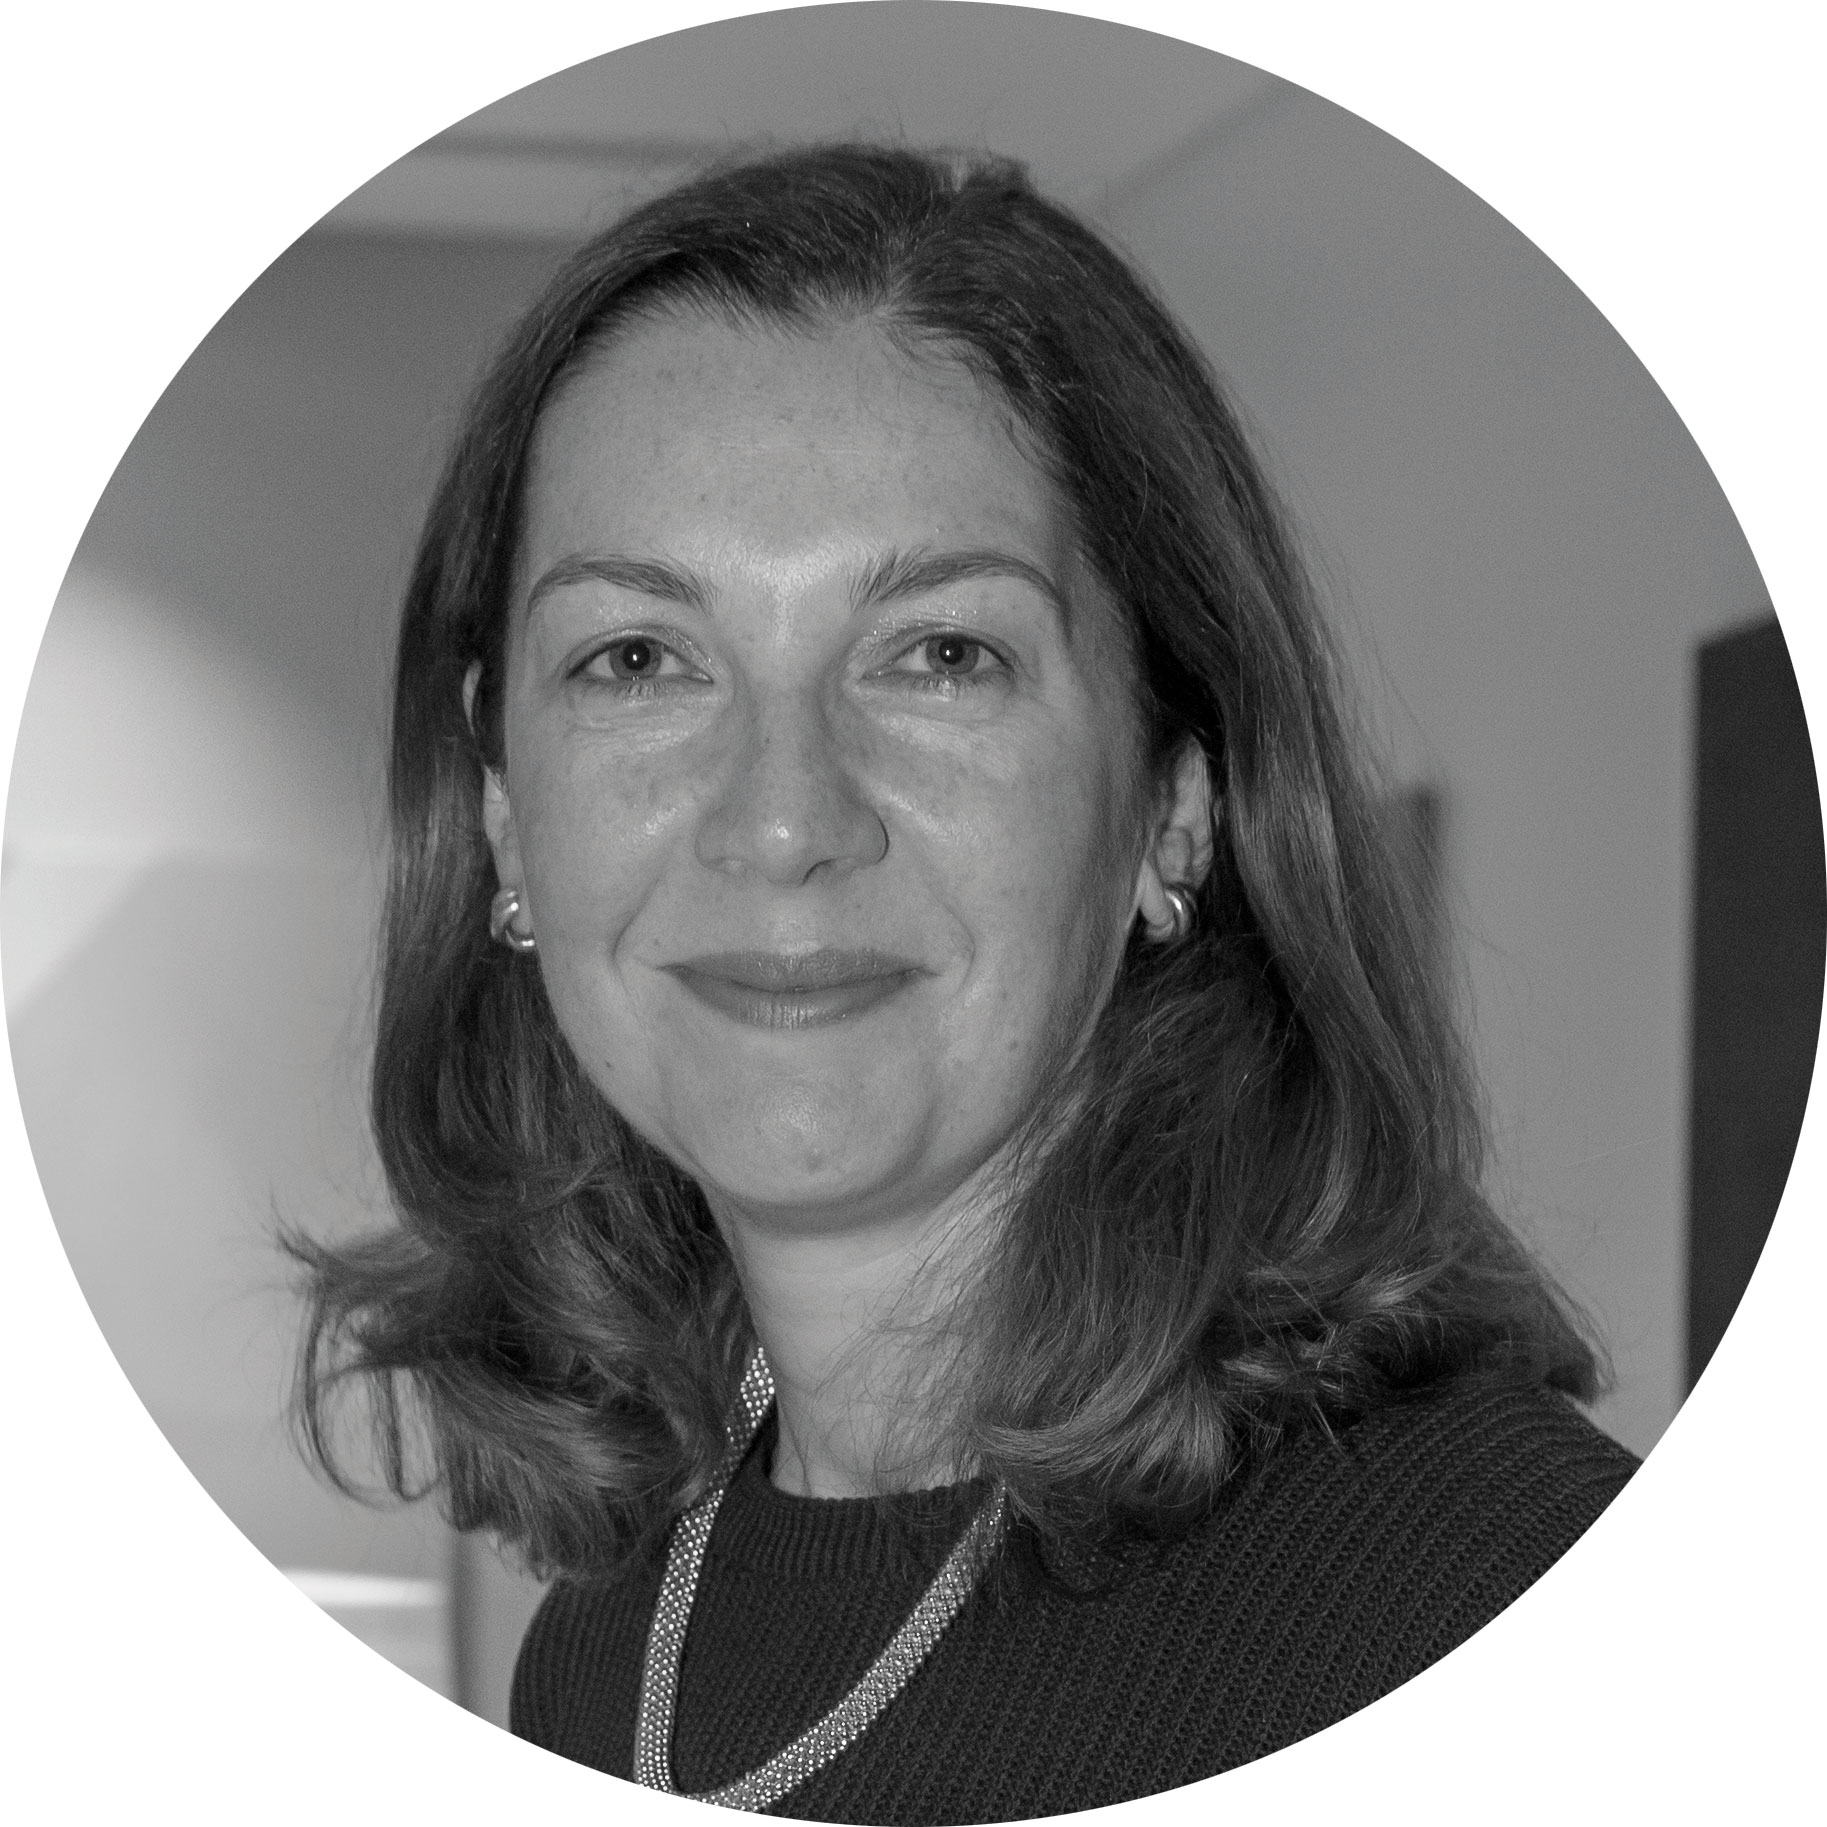 Margaret Davies, VP global account management for EMEA media at Brightcove